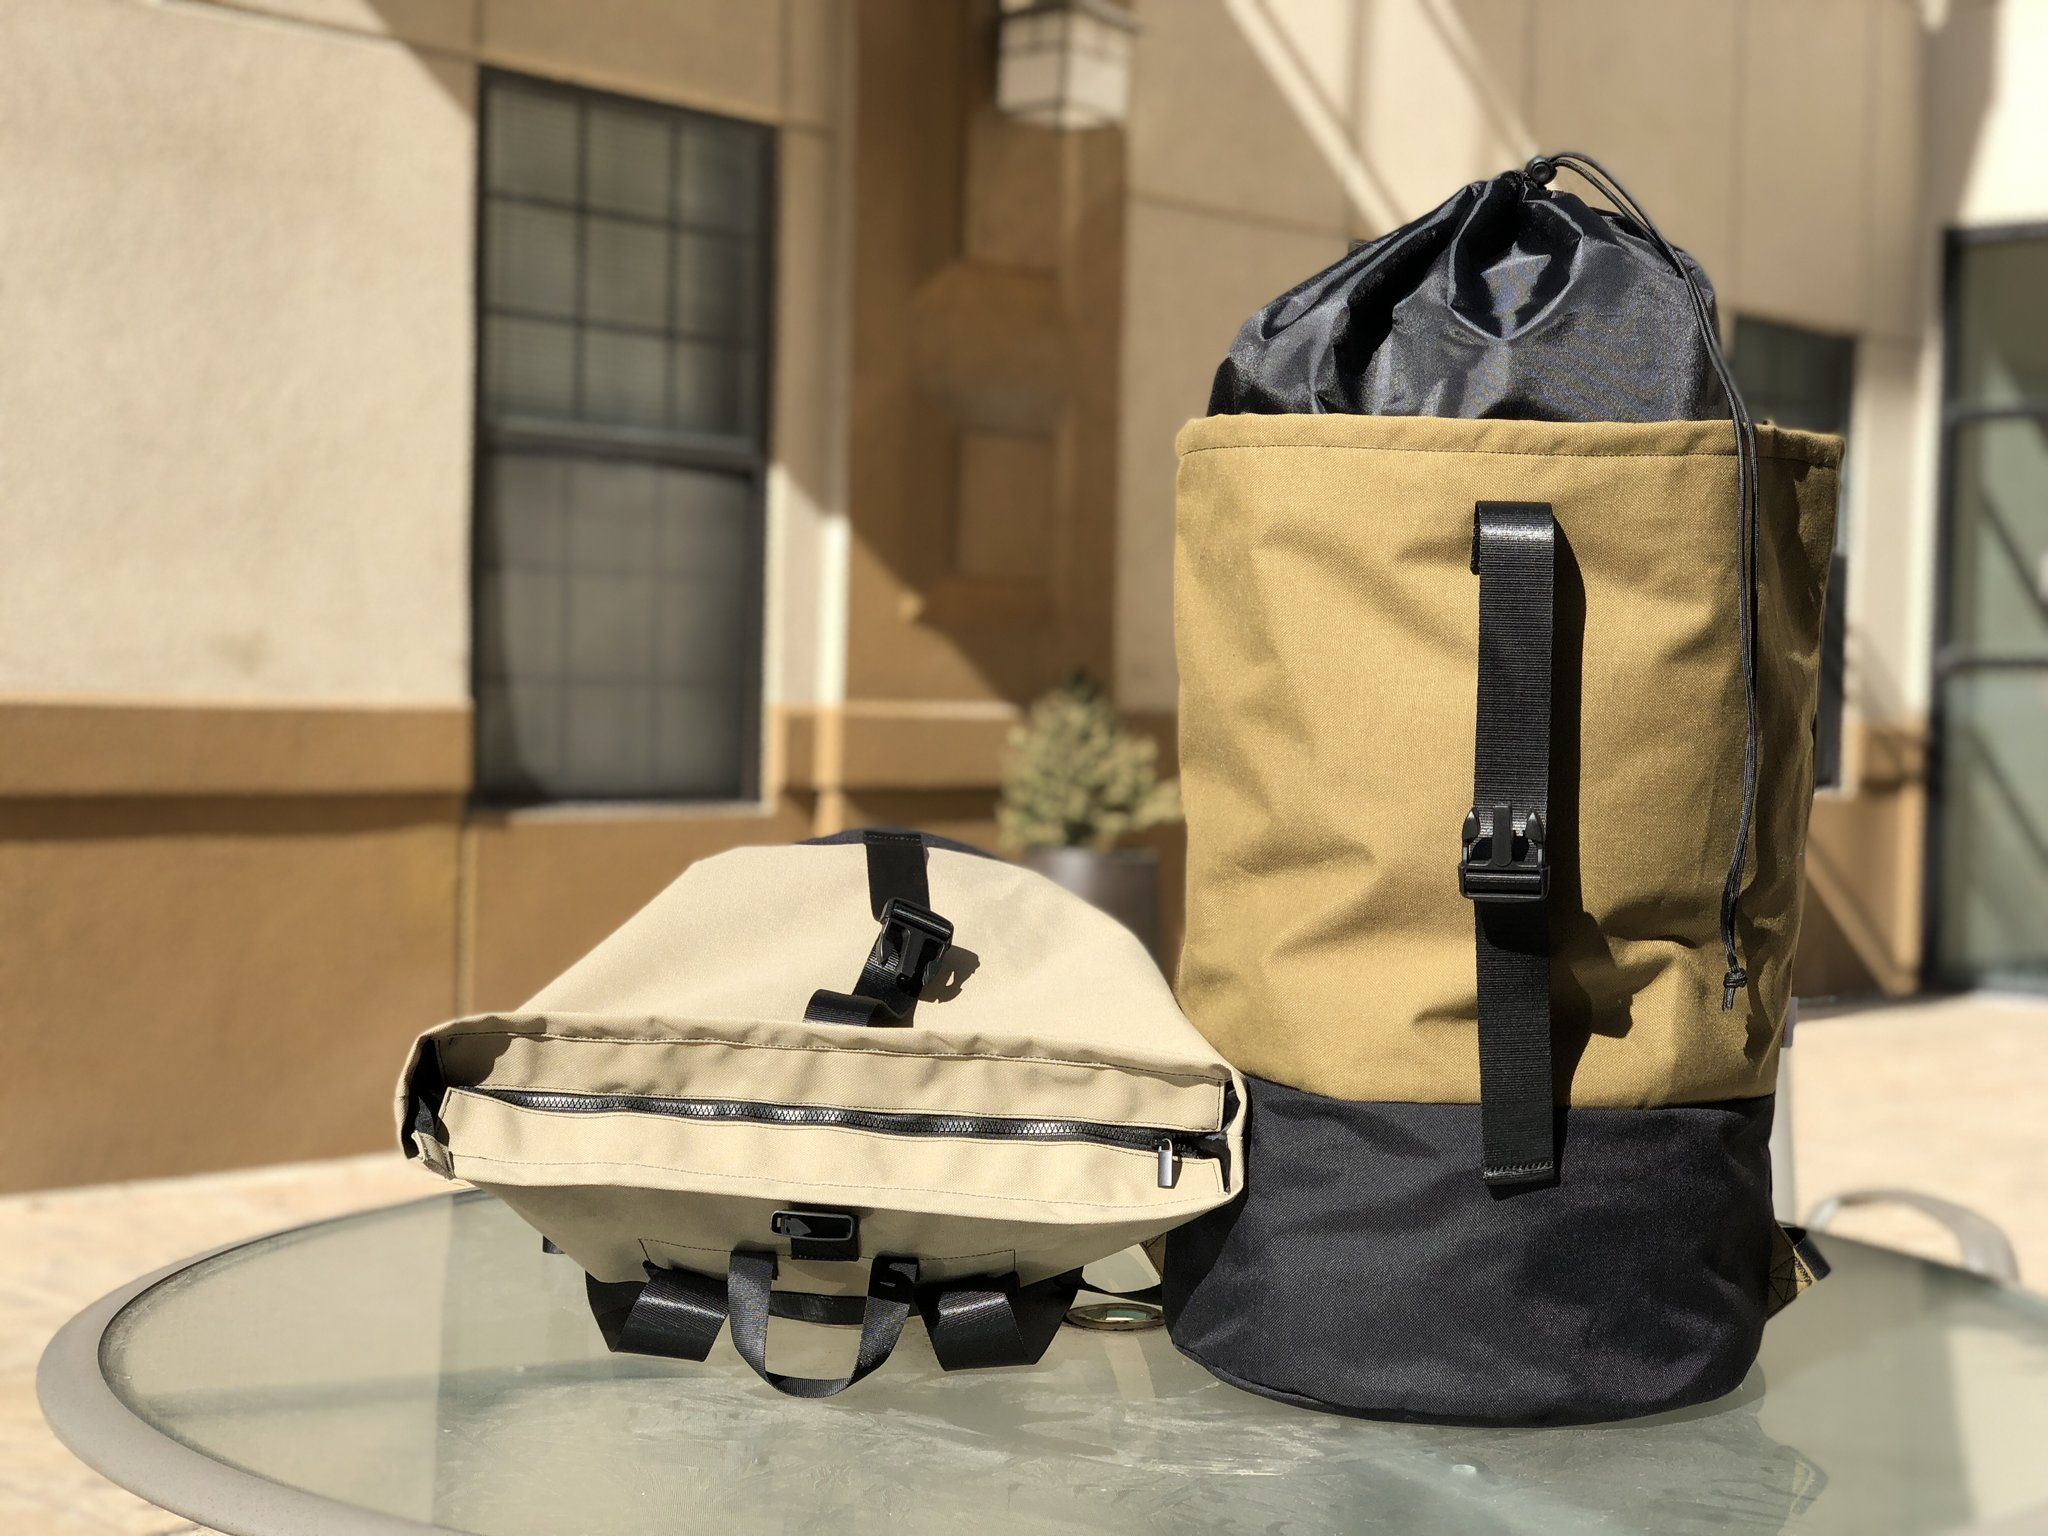 Stramper Bags An All In One Laundry Backpack And Laundry Hamper